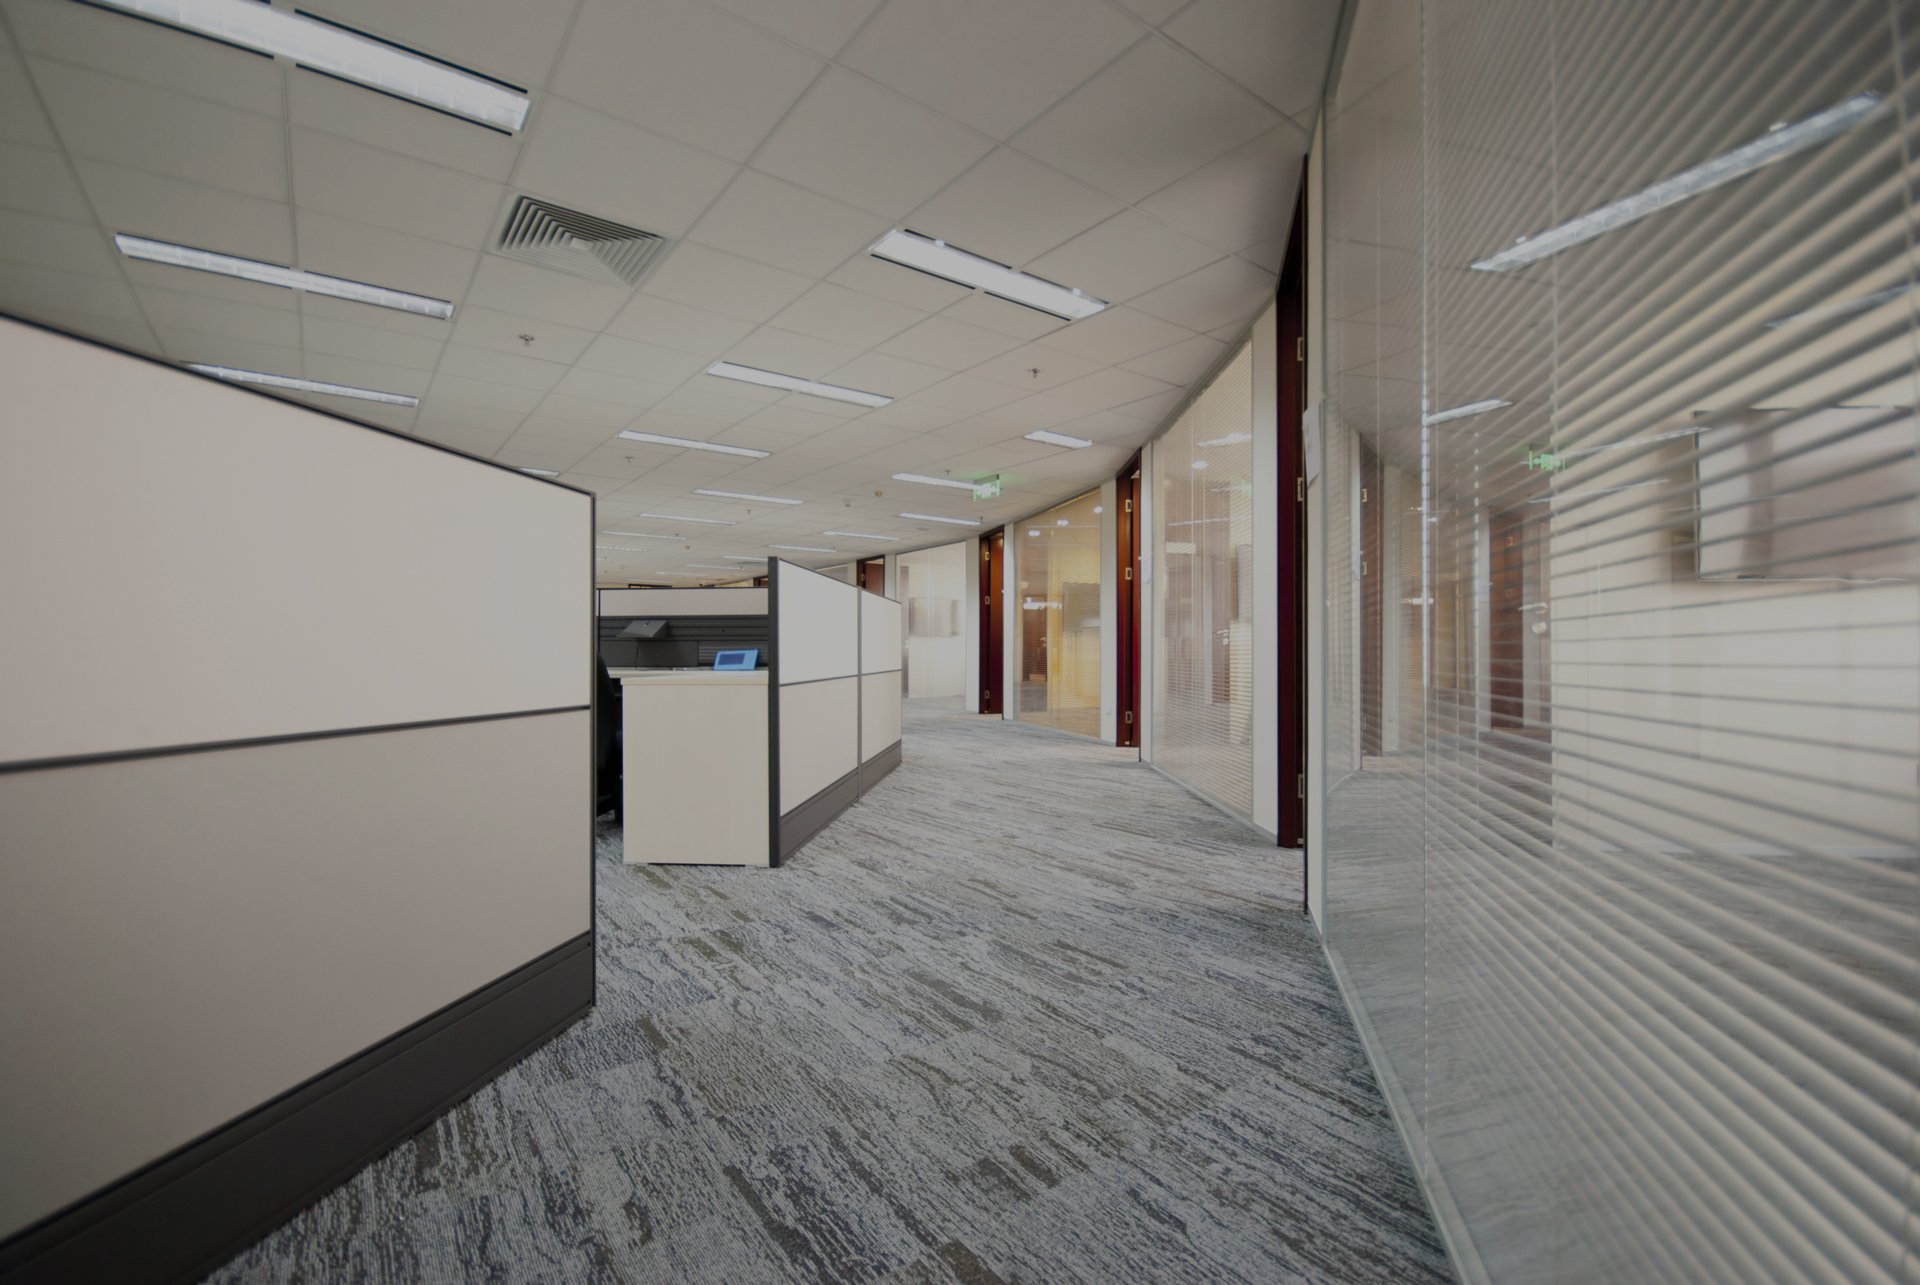 Glass office partitioning & suspended ceilings